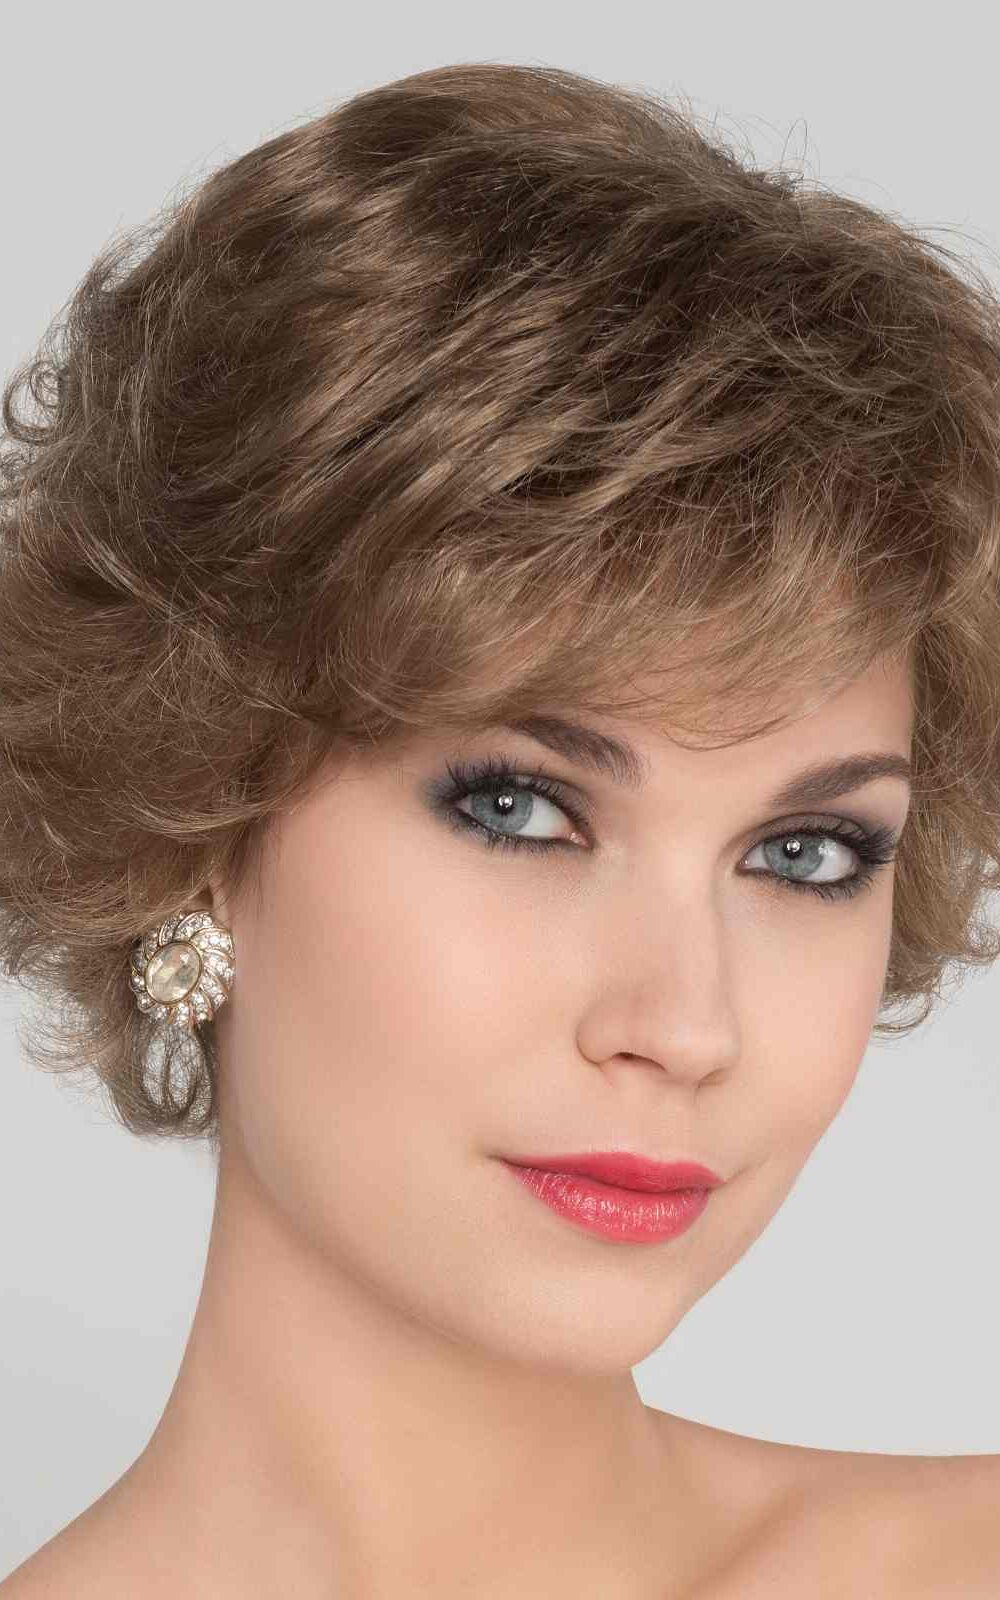 Aurora Comfort   Synthetic Lace Front Wig (100% Hand-Tied) by Ellen Wille   Dark Sand Mix   Elly-K.com.au